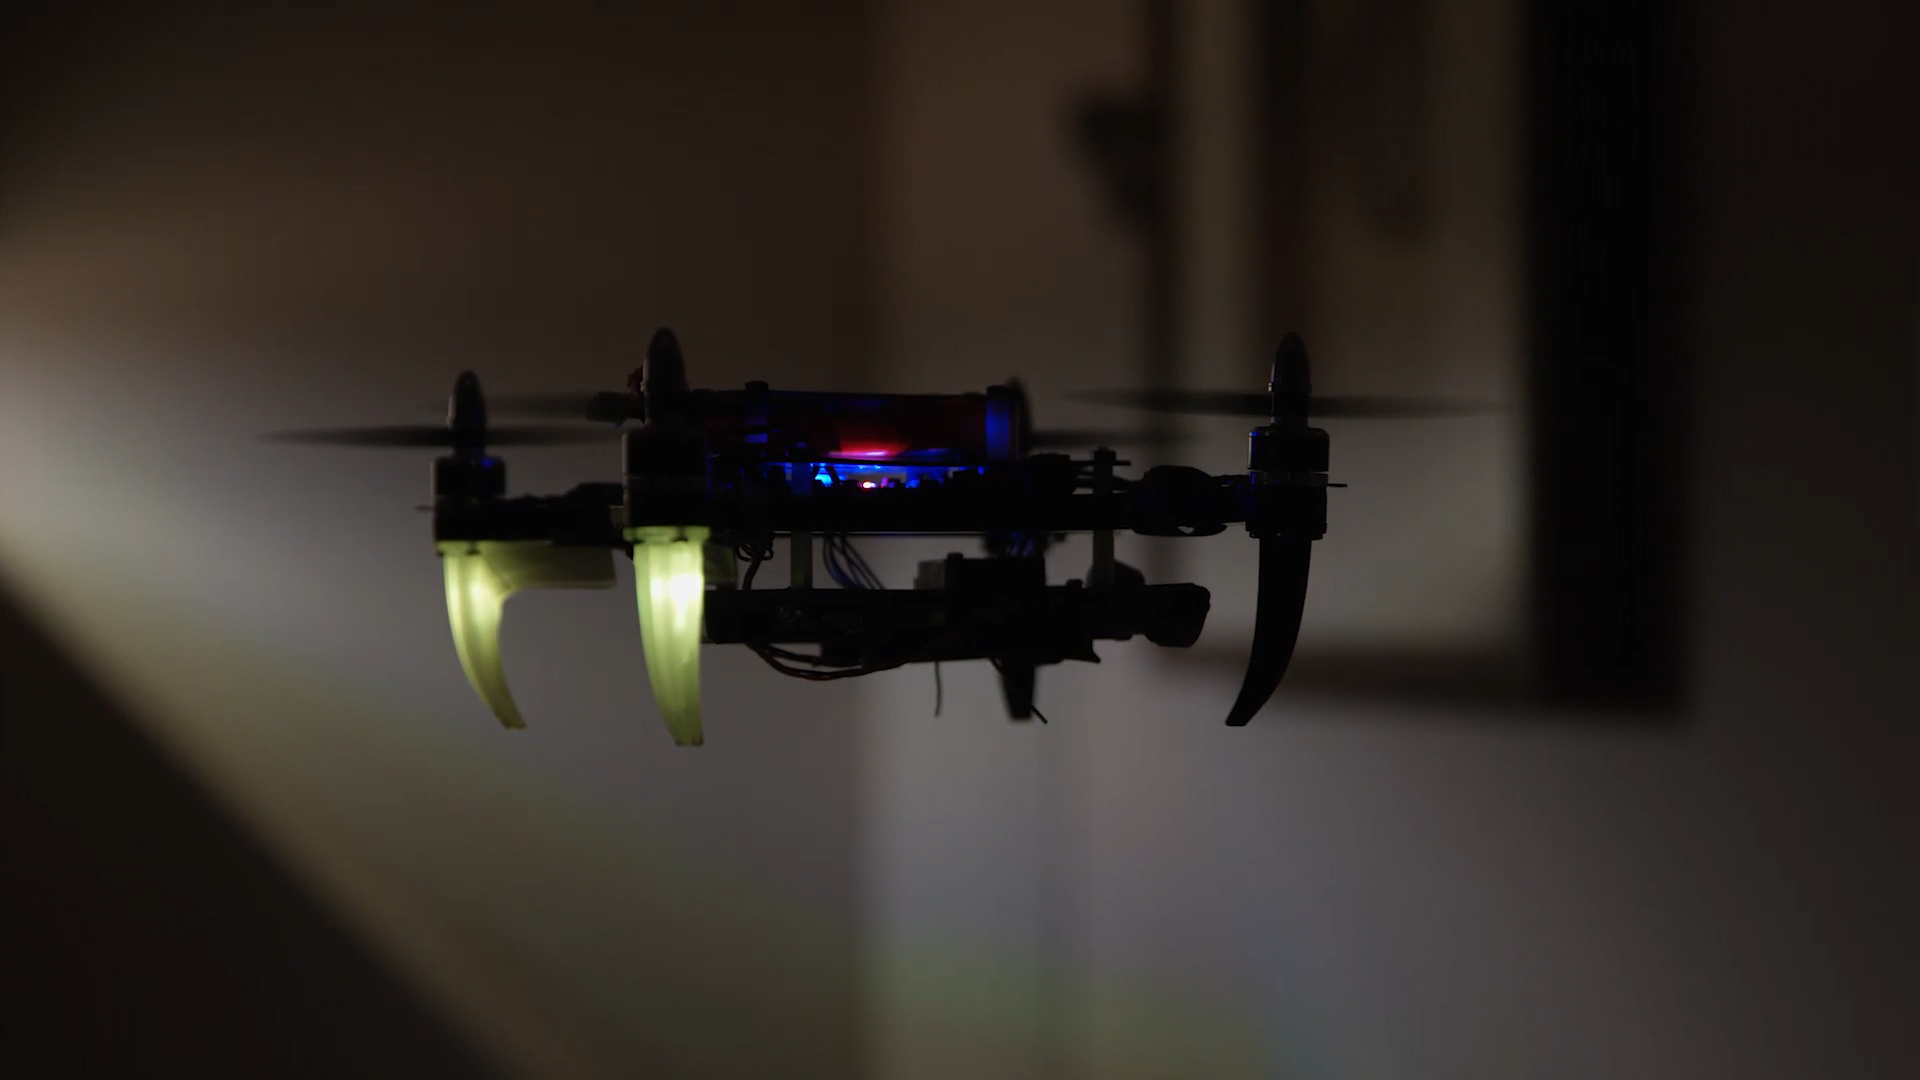 Night Security and Surveillance Drone